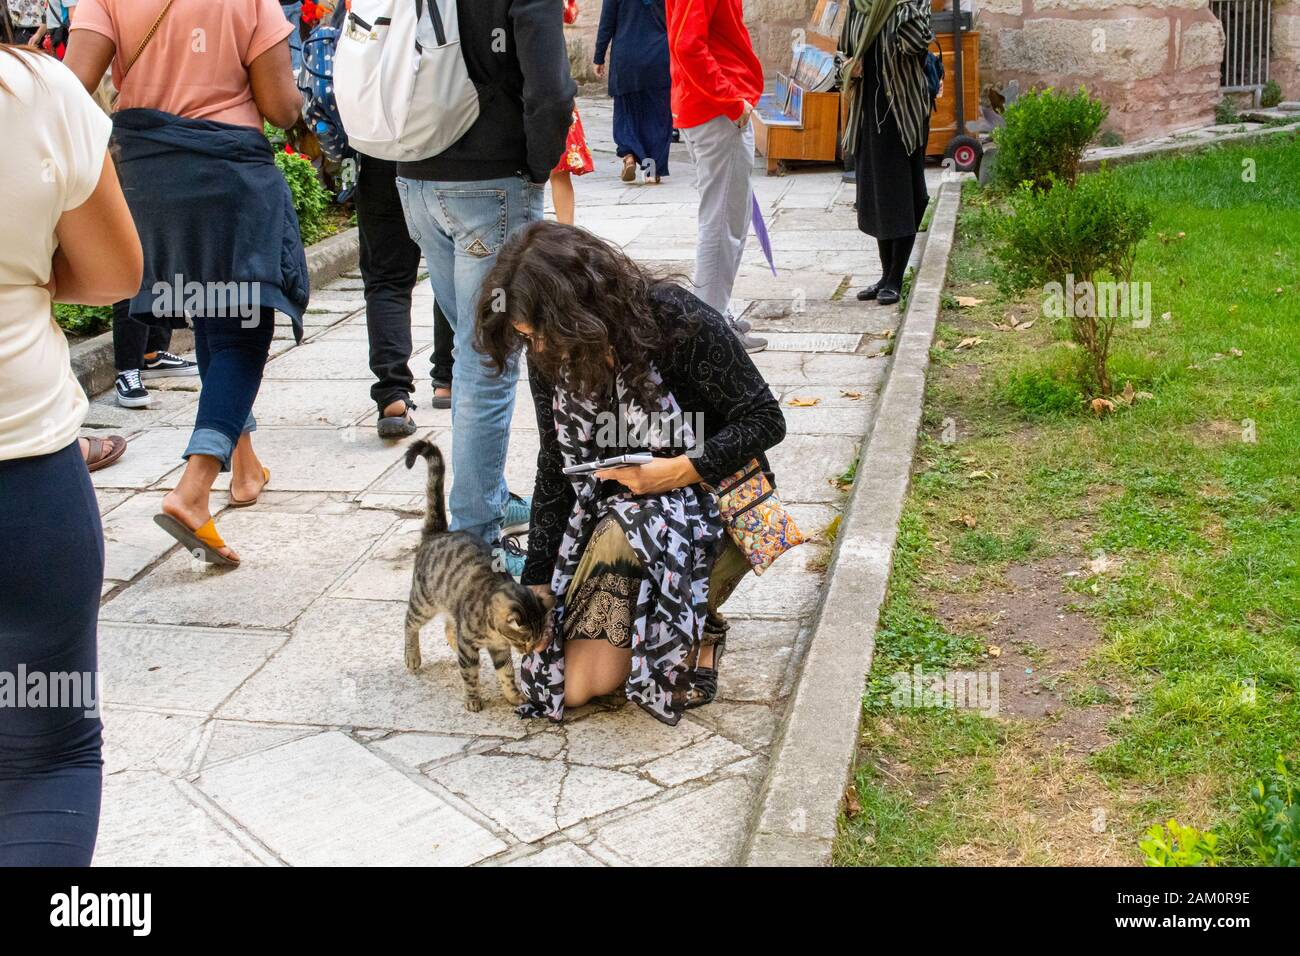 A female tourist with a cat scarf on stops to pet a stray cat at the Hagia Sophia museum in Istanbul, Turkey. Stock Photo